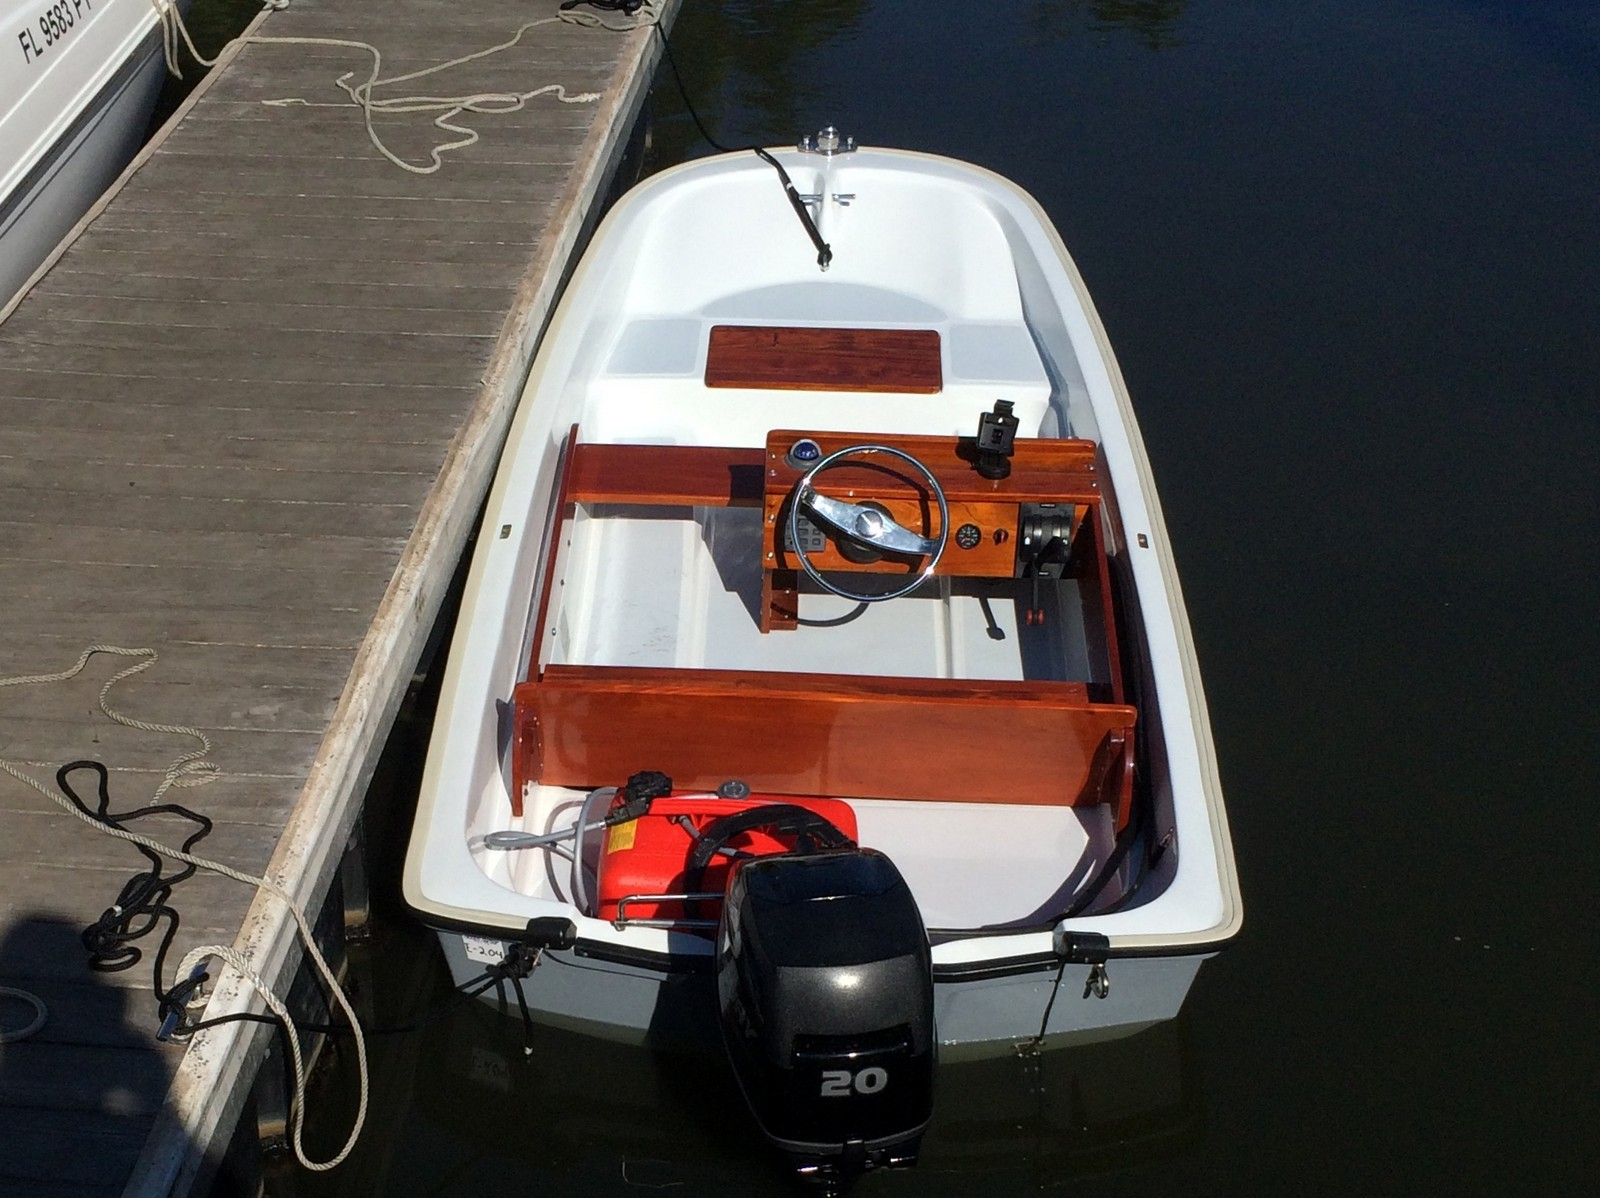 small resolution of despite its factory new appearance this boat is not i don t know it s exact age but it s a well restored super sport model built from 1984 to 1994